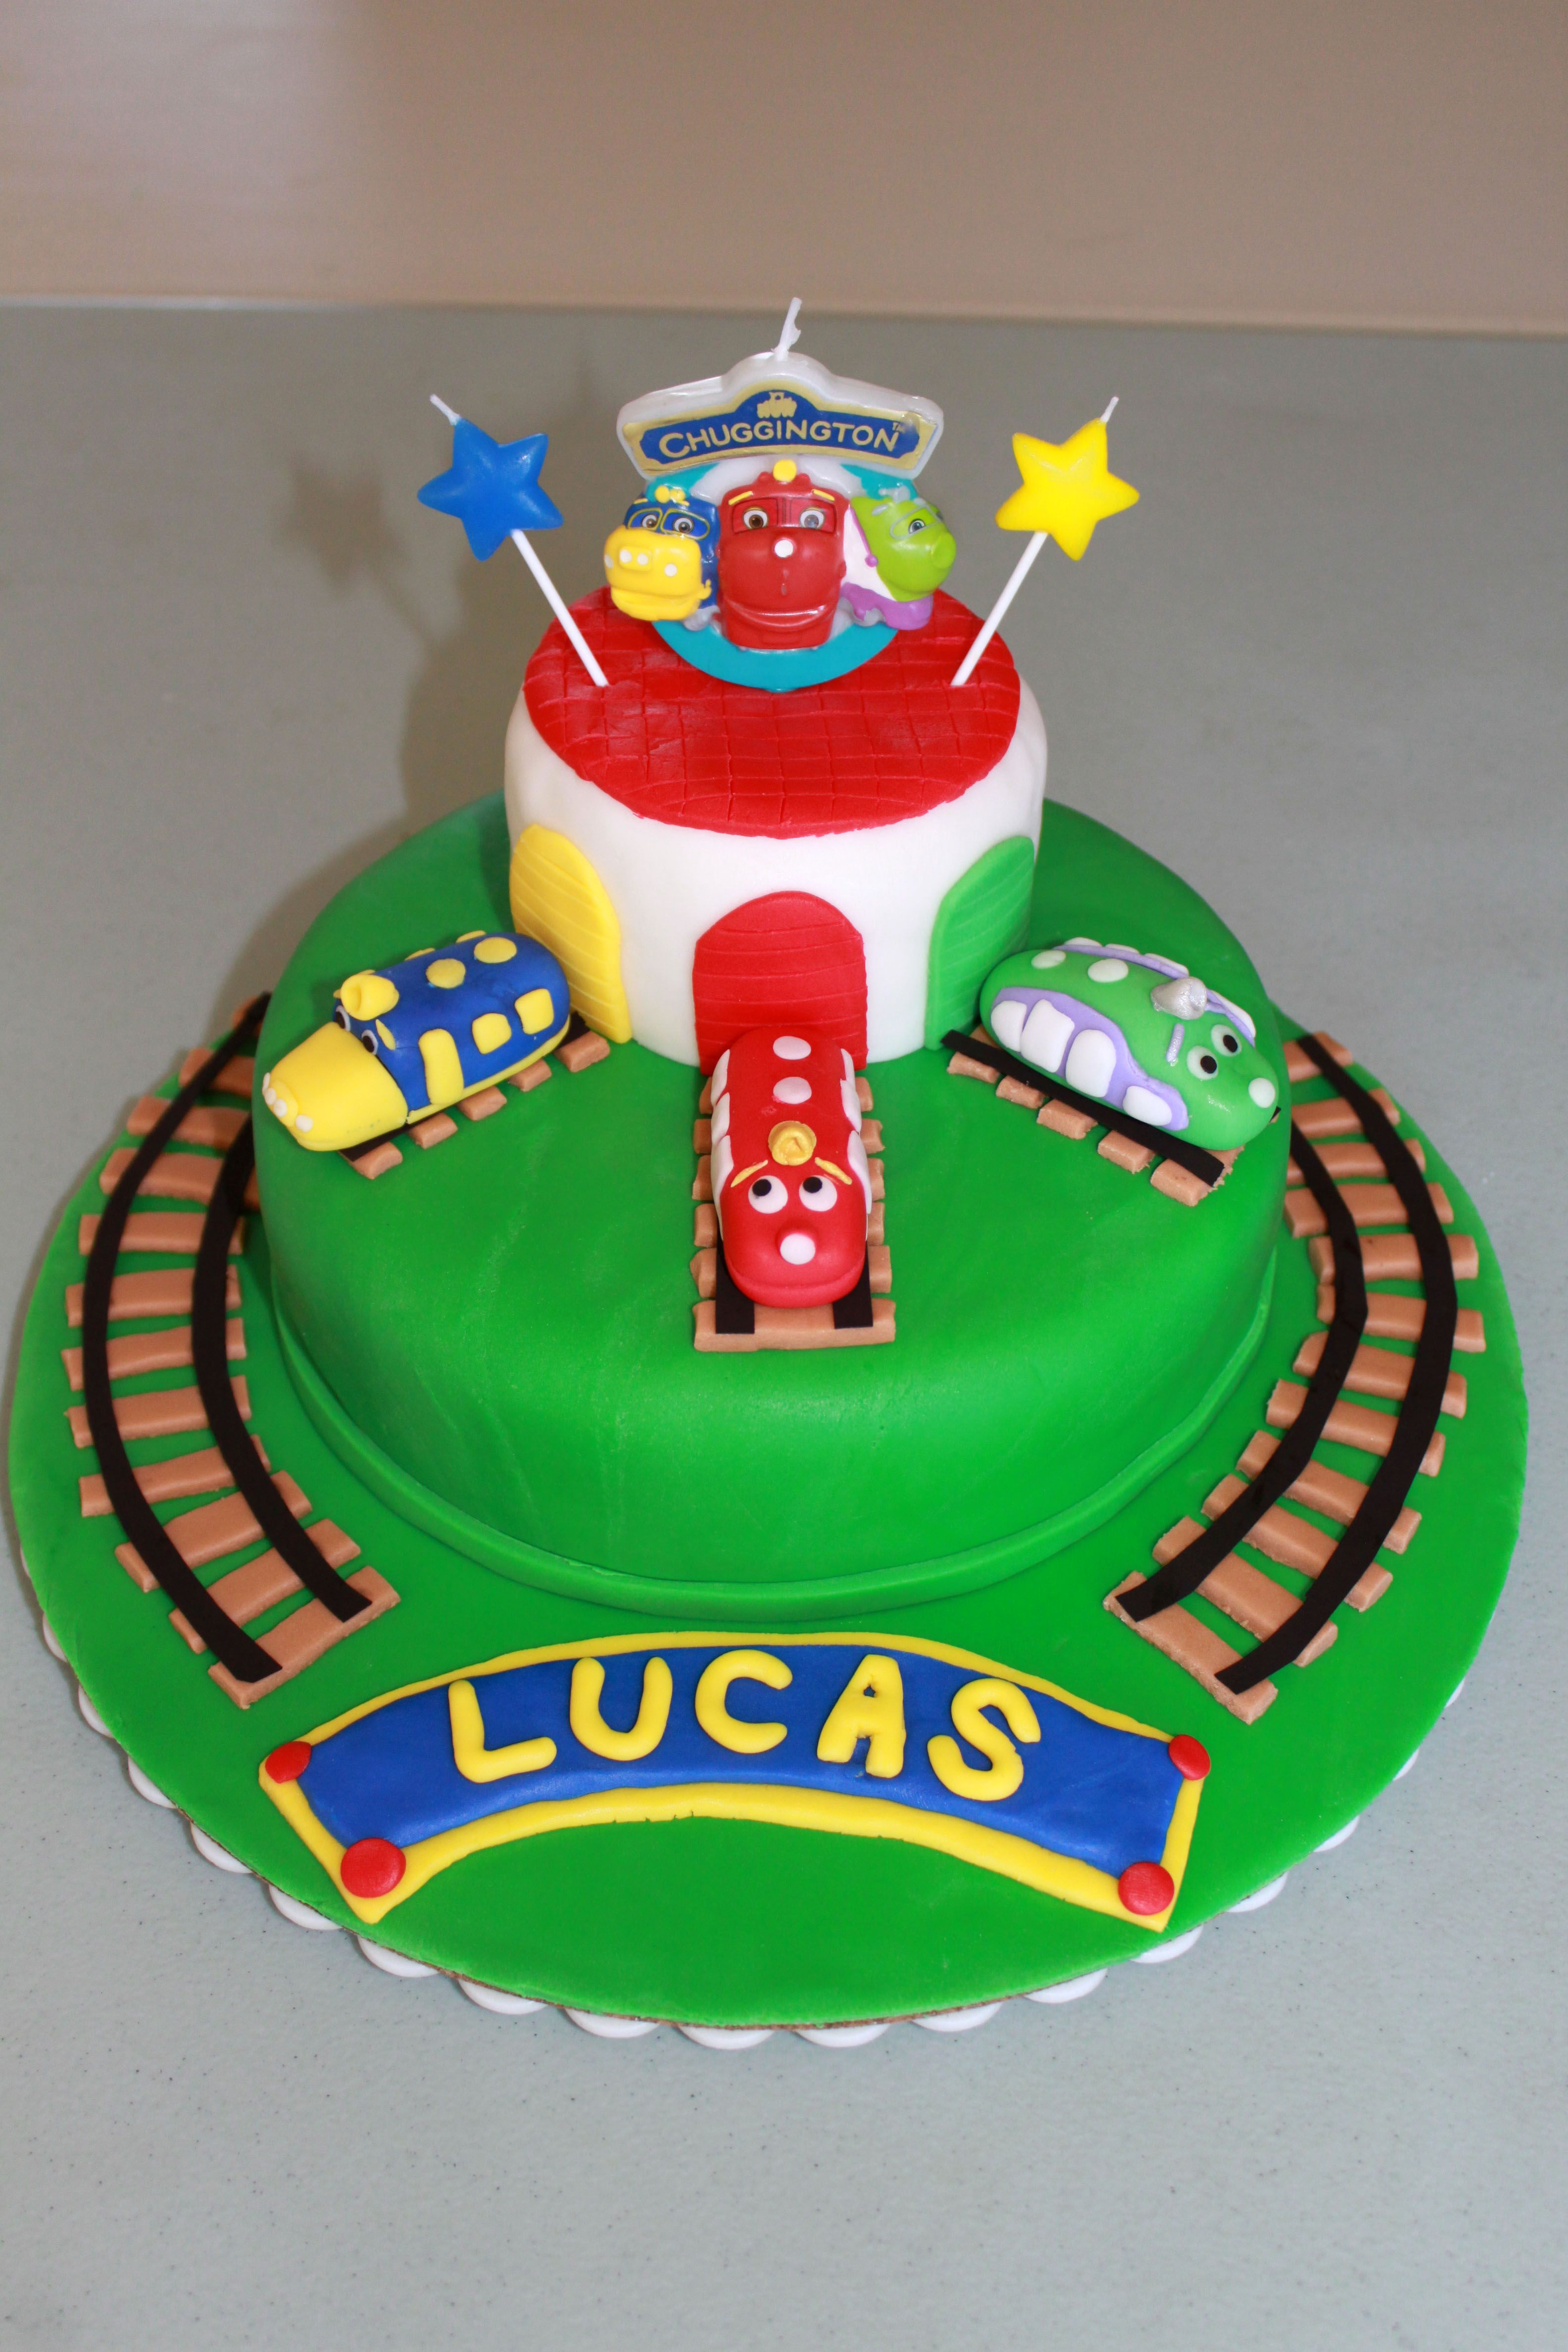 Lucas Chuggington Cake Some Favorite Cakes Ive Made Pinterest